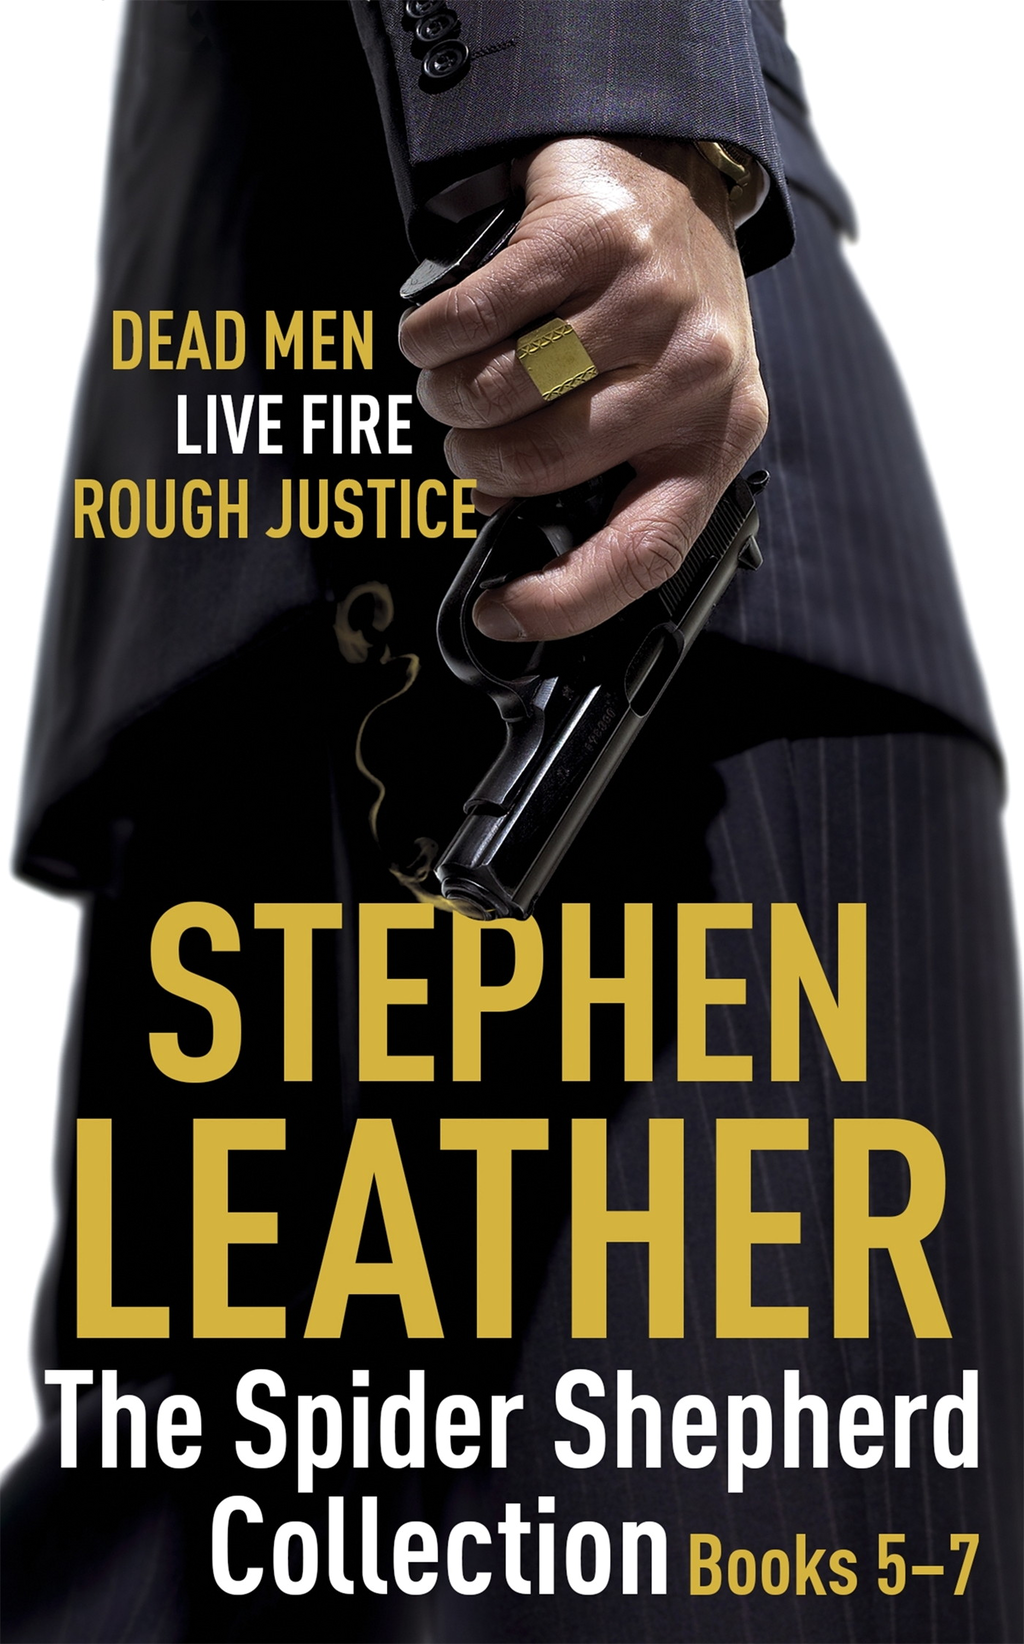 The Spider Shepherd Collection 5-7 Dead Men,  Live Fire,  Rough Justice